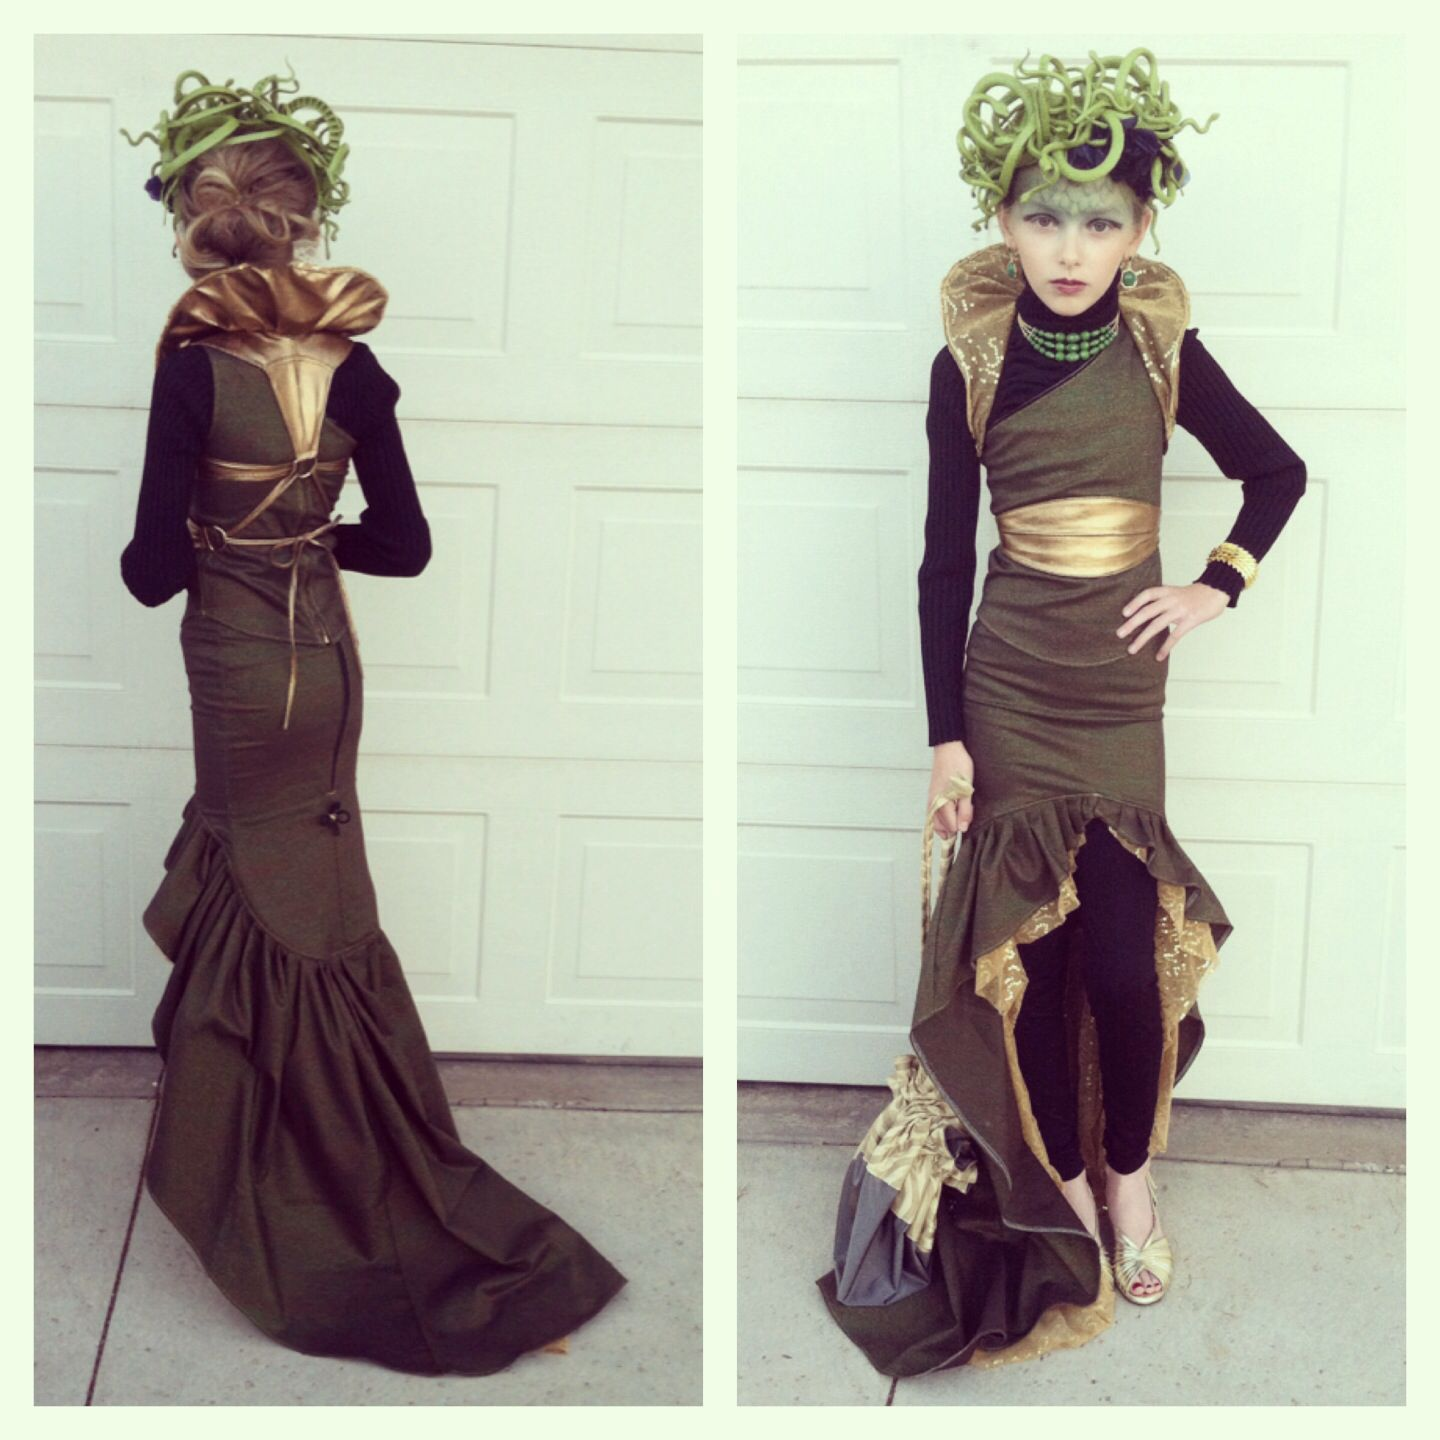 Medusa halloween costumes for kids share 3 pinterest medusa halloween costumes for kids share solutioingenieria Gallery